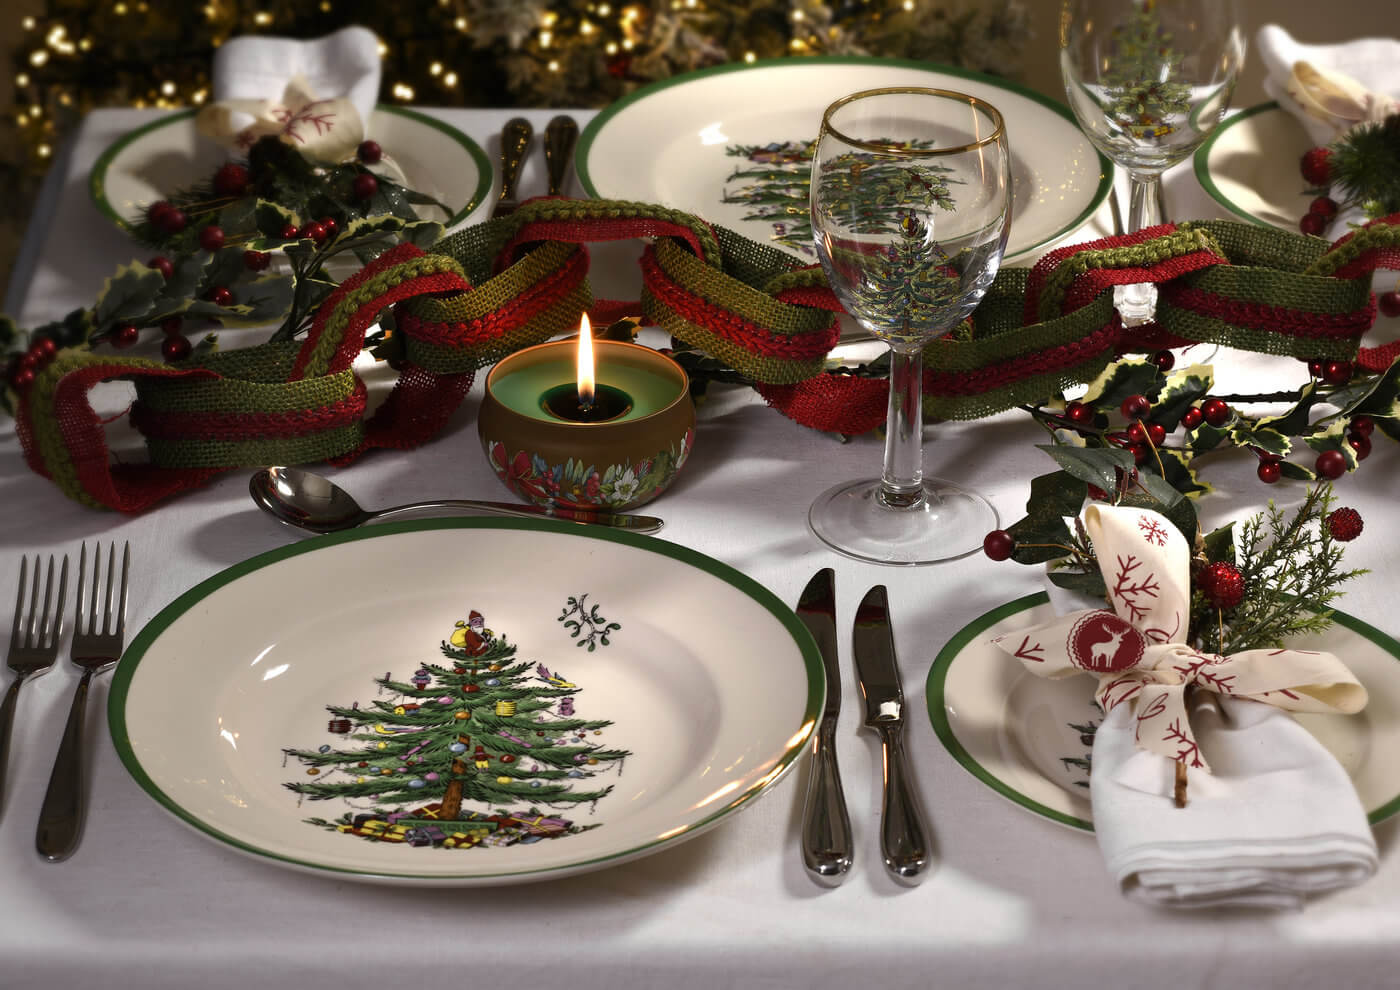 Christmas Tree Place Setting